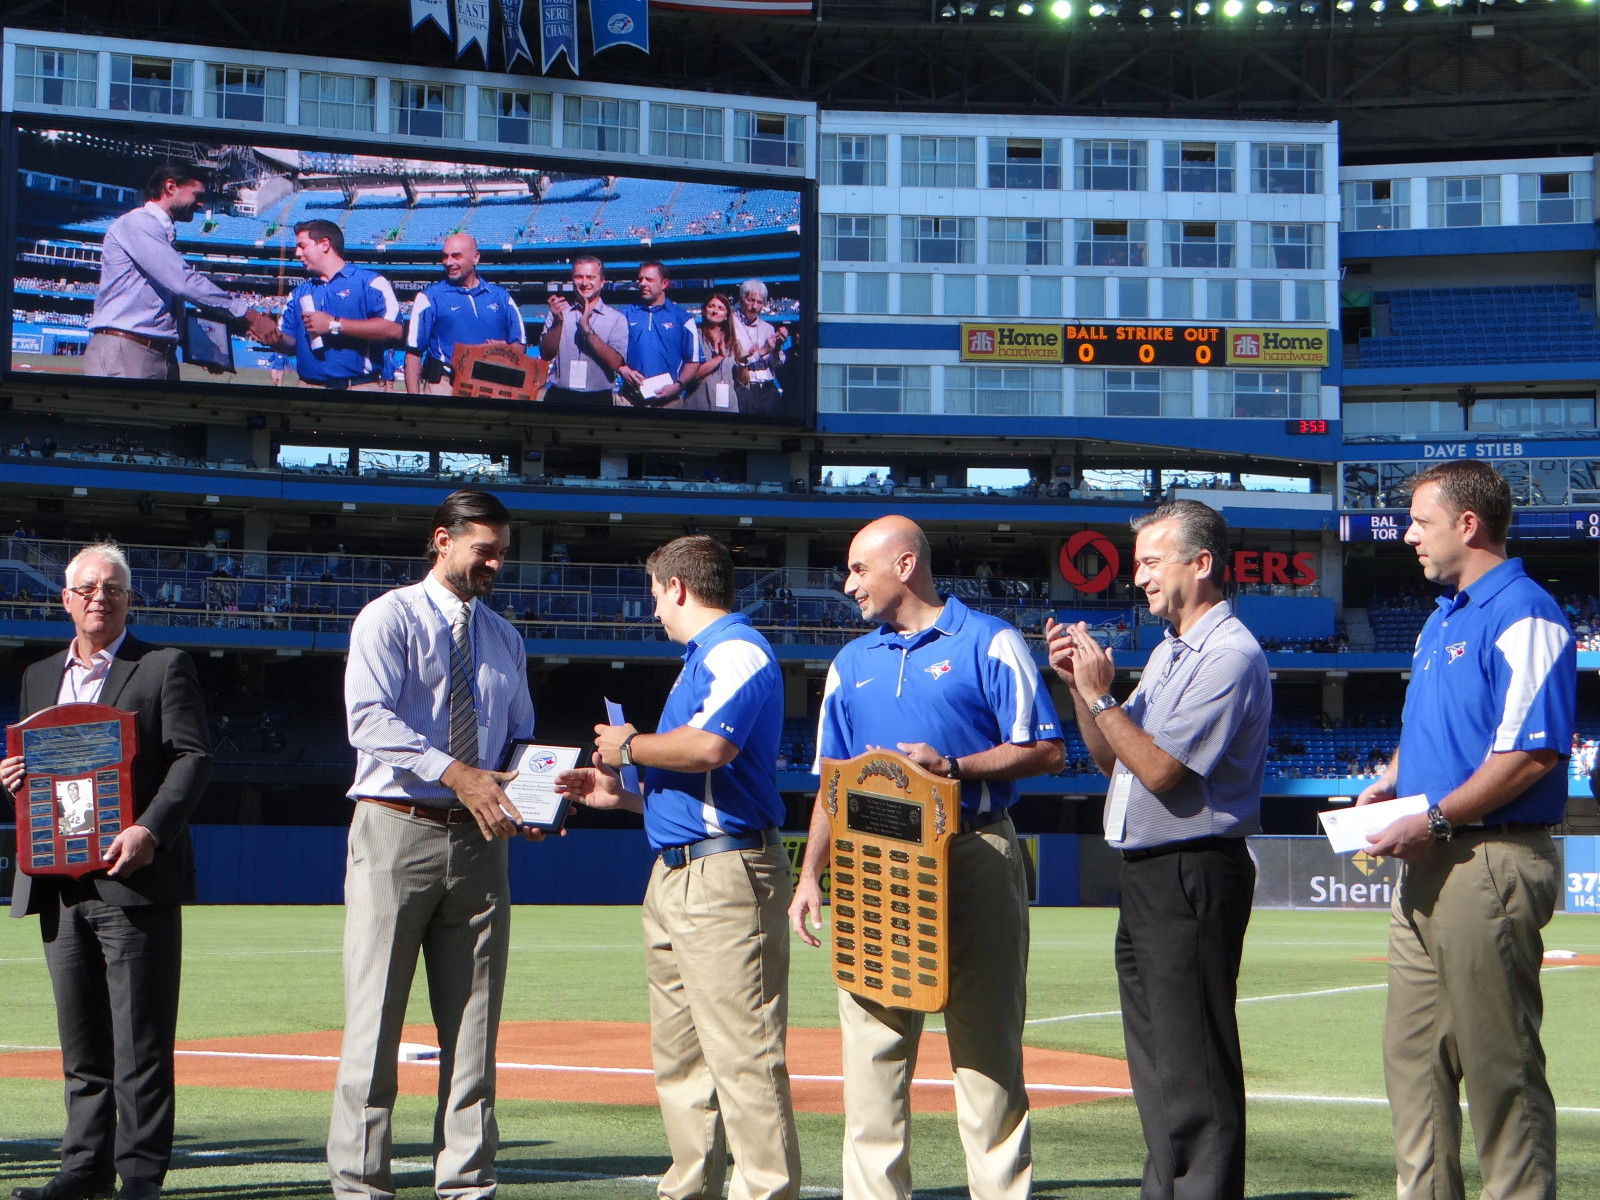 Fourth-year Sheridan student and Blue Jays' Scholarship Award winner, Dan Hilborn, is presented with a plaque by team orthopedic surgeon Dr. Jason Smith during pre-game ceremonies at Rogers Centre on Saturday.